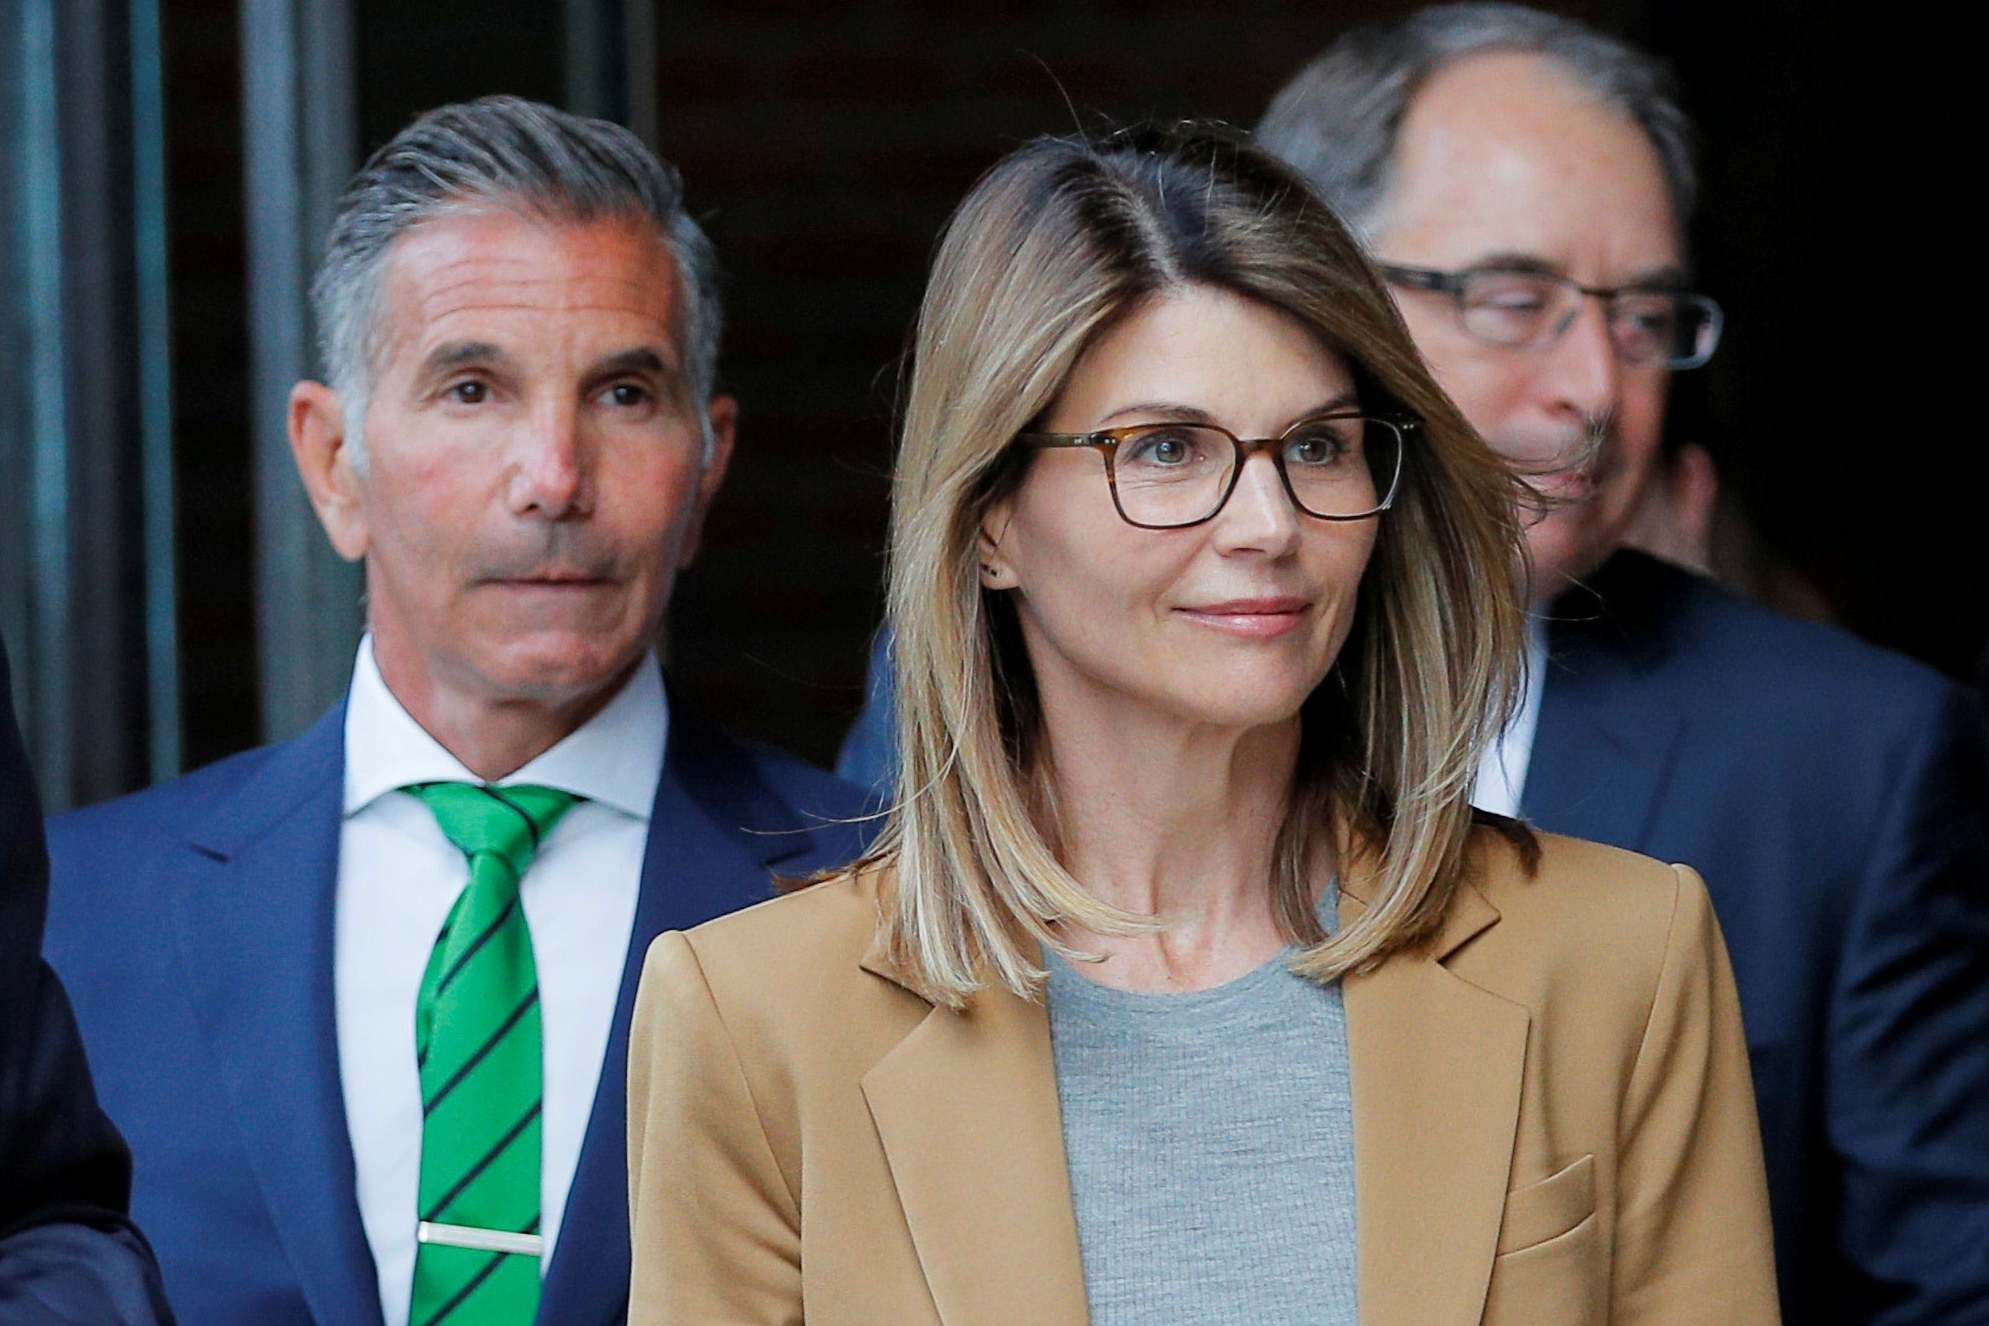 Lori Loughlin launched after serving jail term for university bribes rip-off